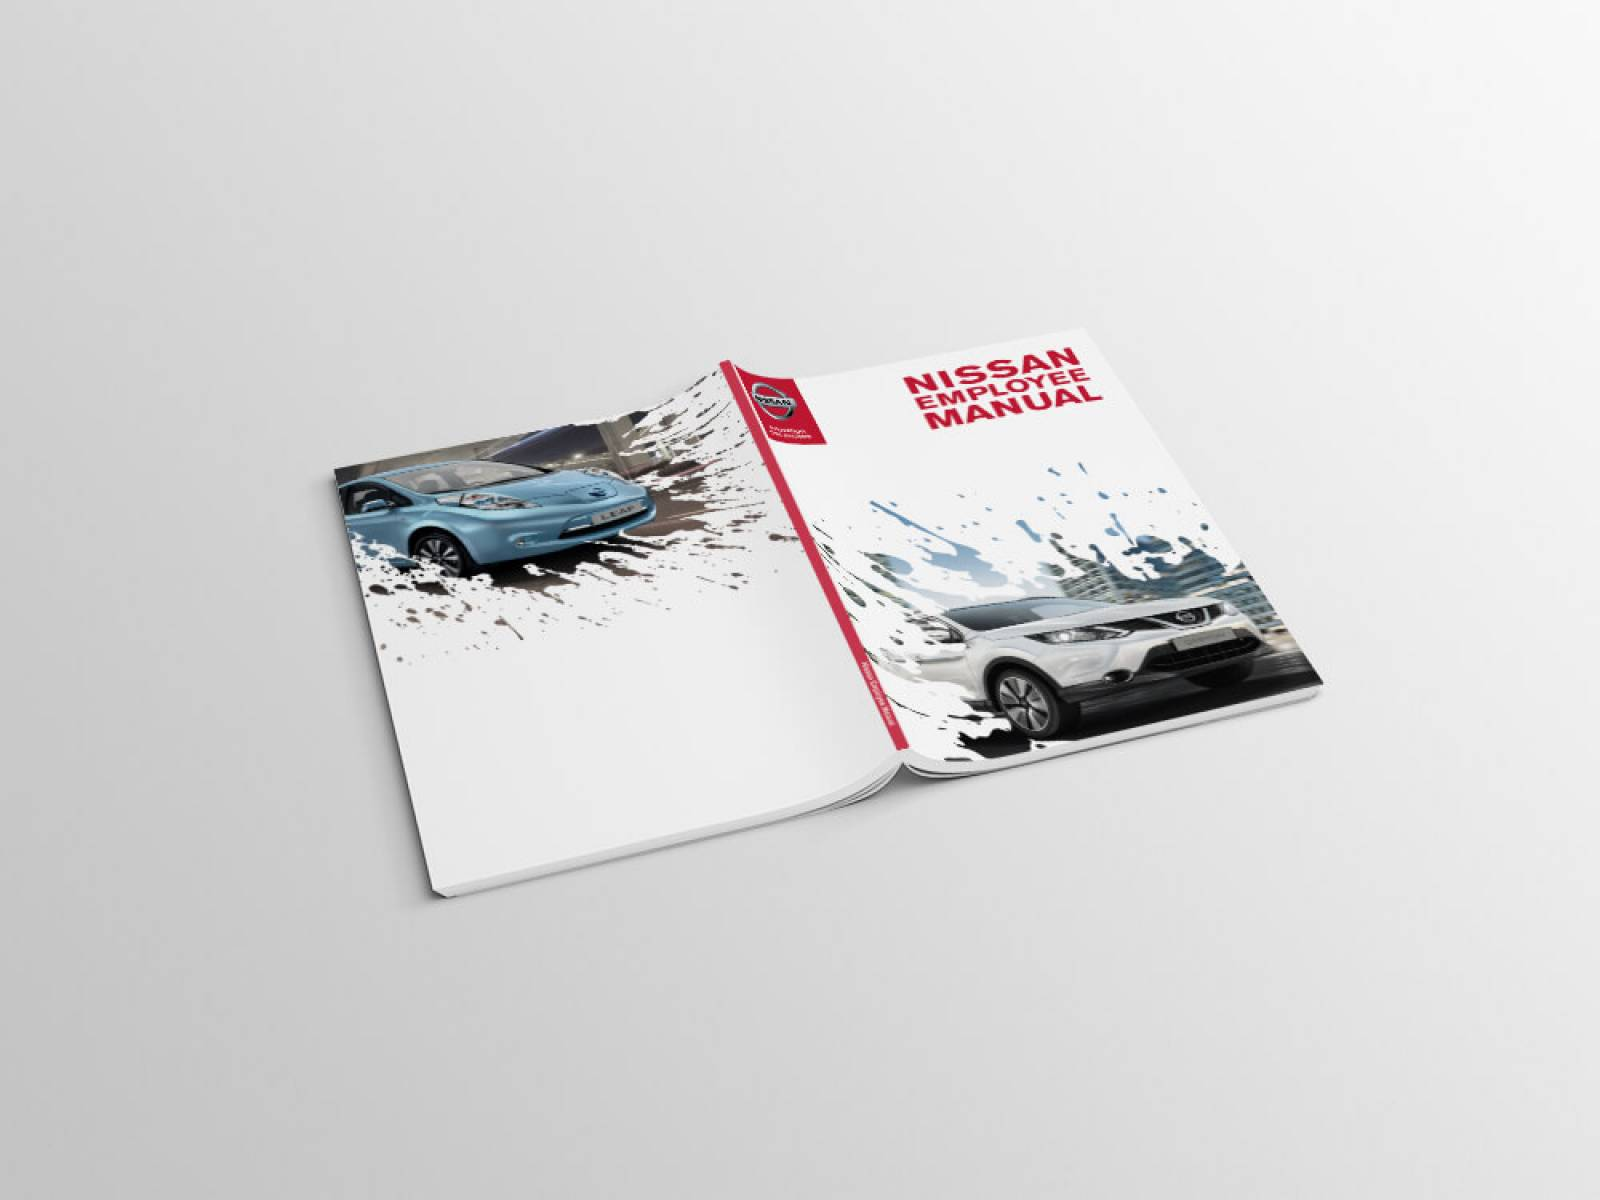 Nissan-brochure-2-design-agency-graphic-design-canterbury.jpg